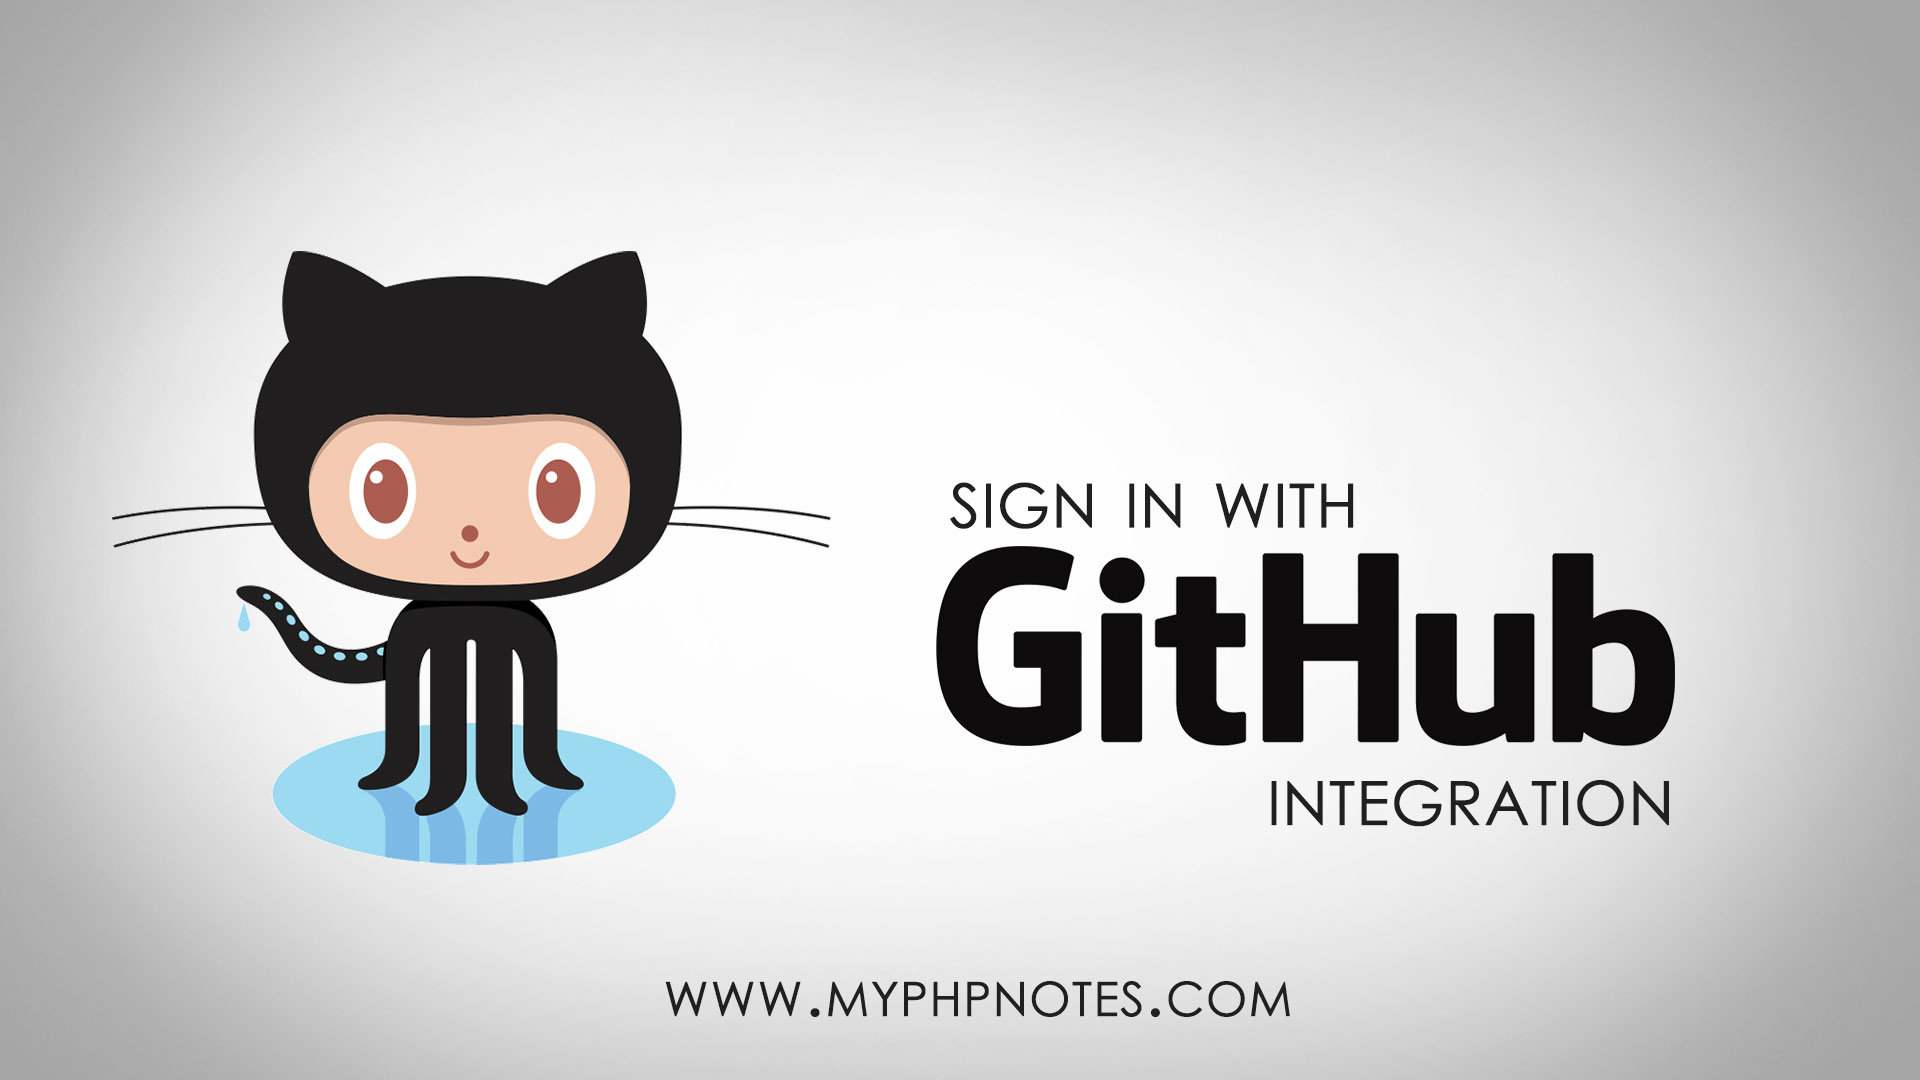 Sign in with GitHub - OAuth Integration image